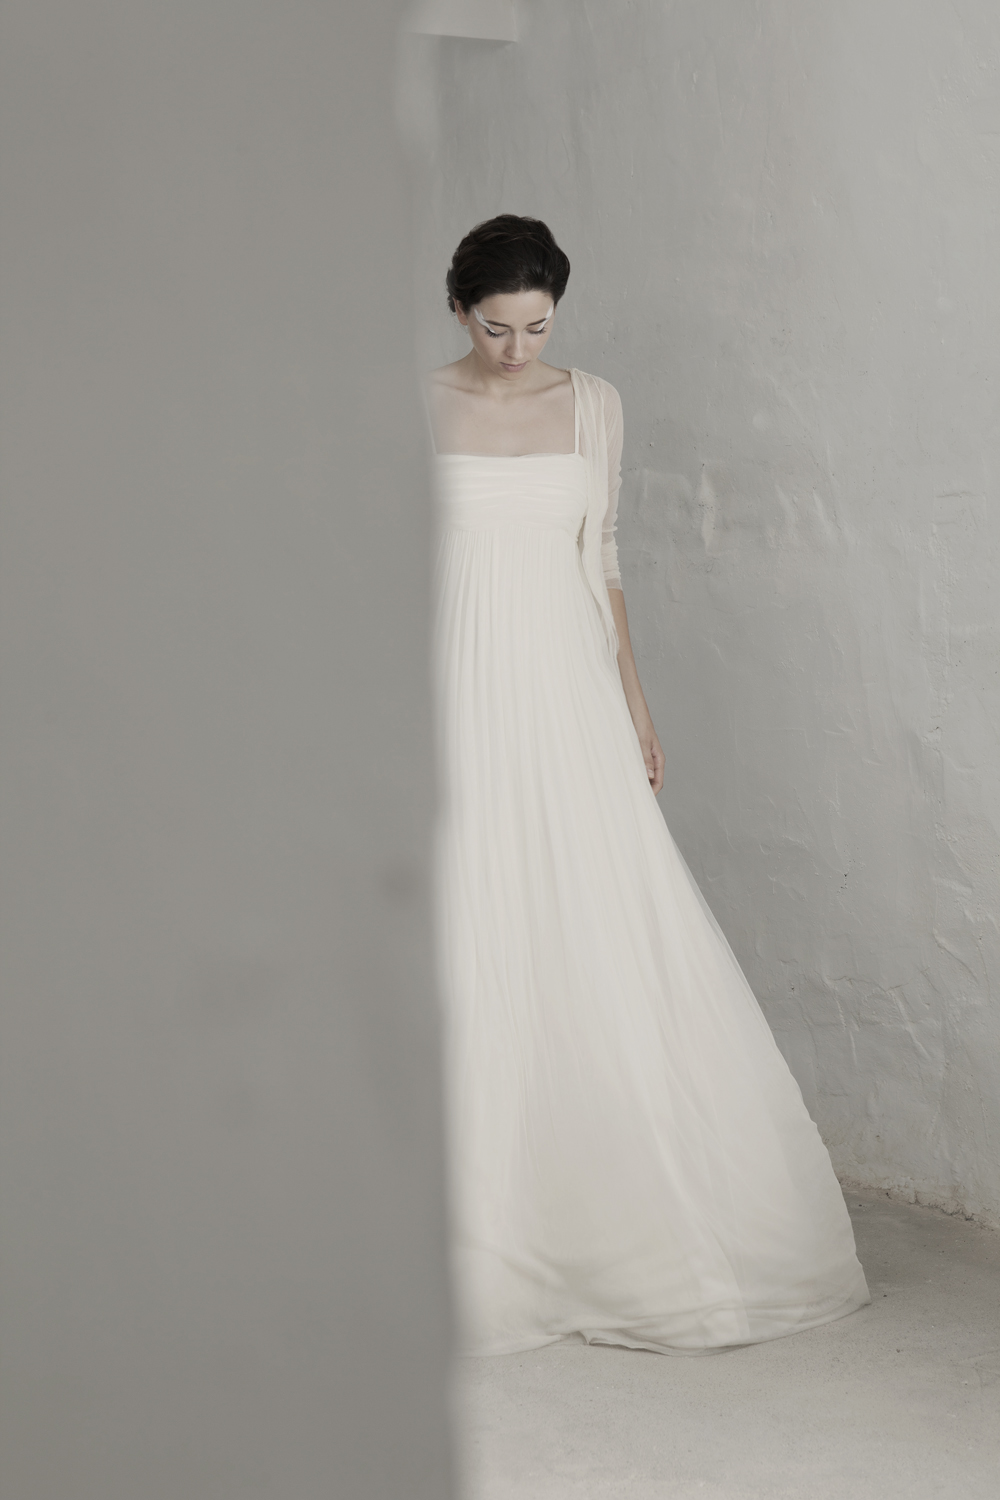 vestido novia cortana wedding planner barcelona paris berlin (8)